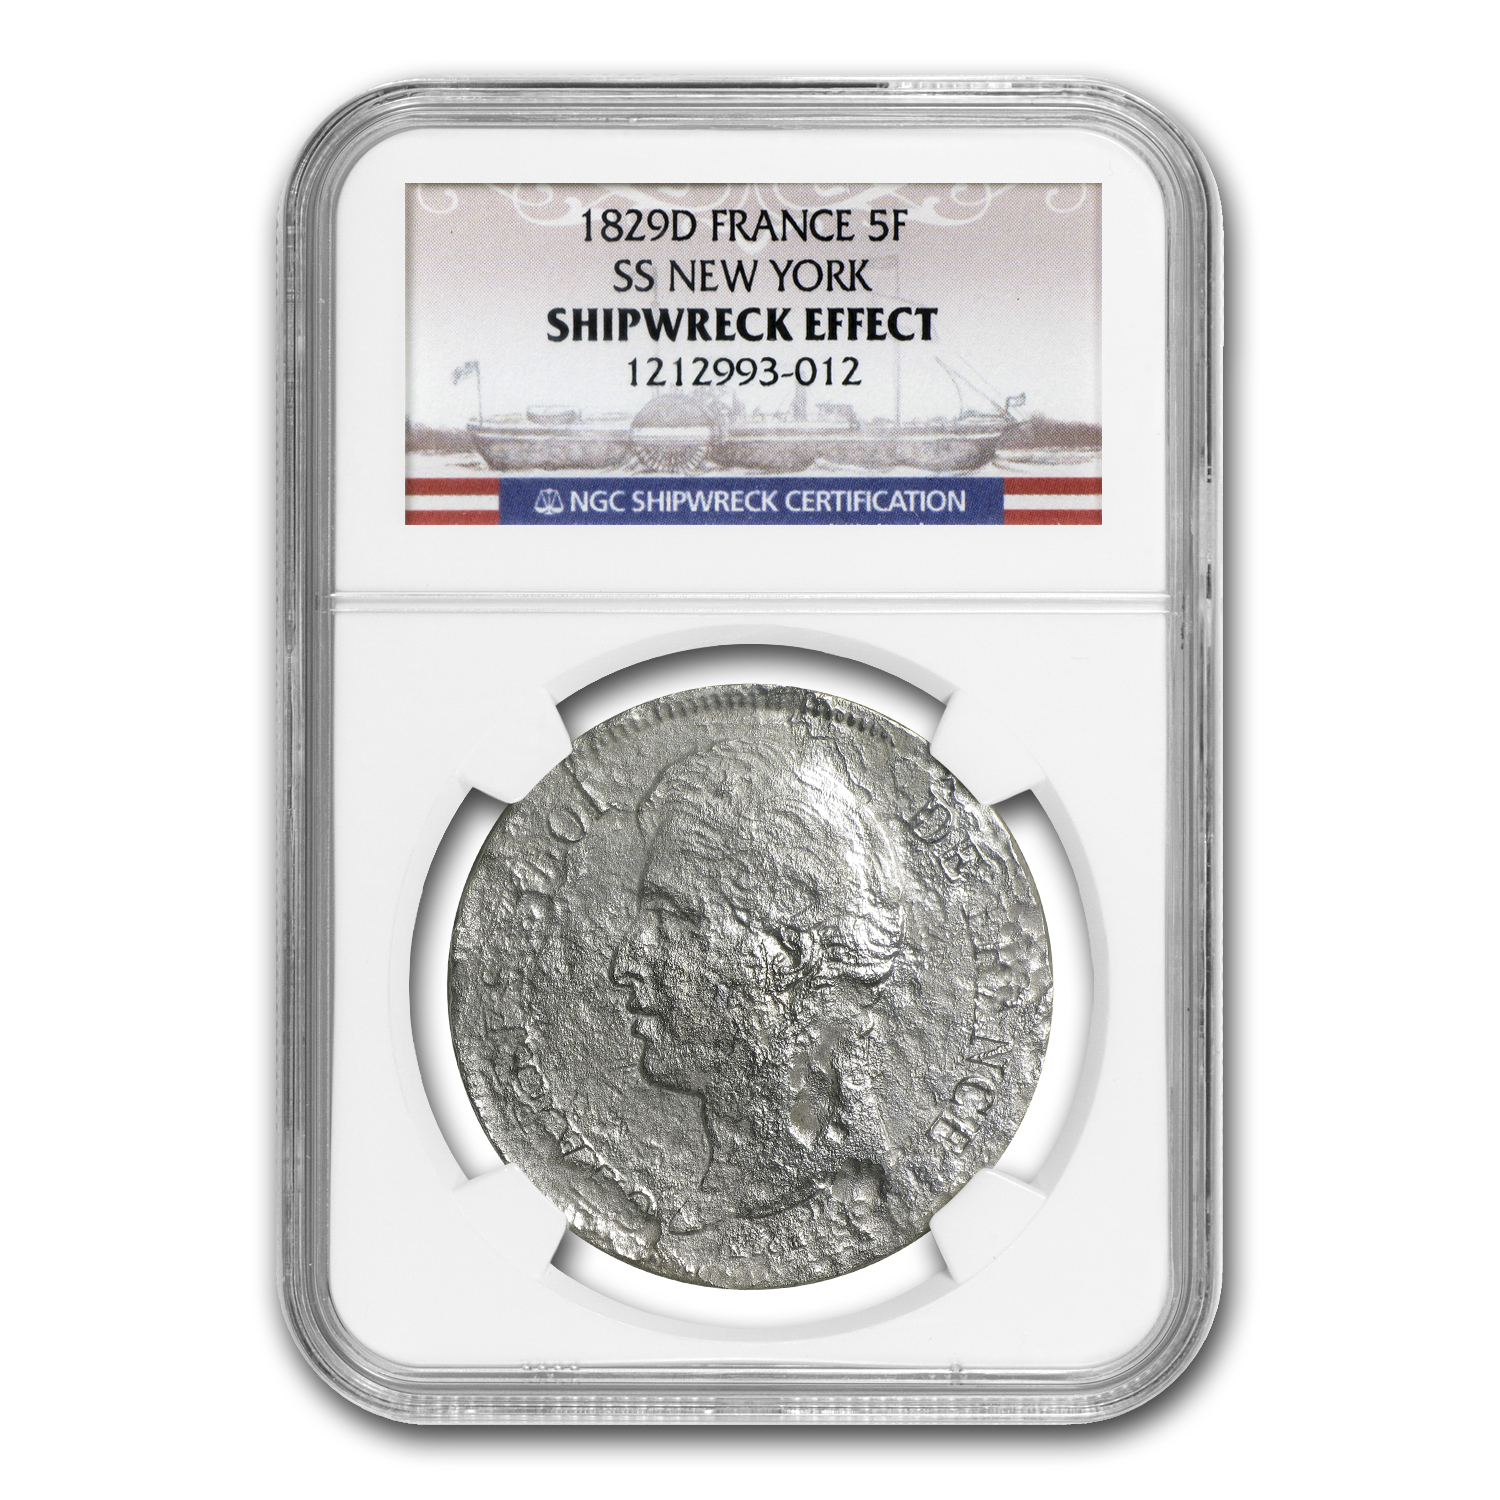 1829 France Silver 5 Francs SS New York NGC (Shipwreck Effect)